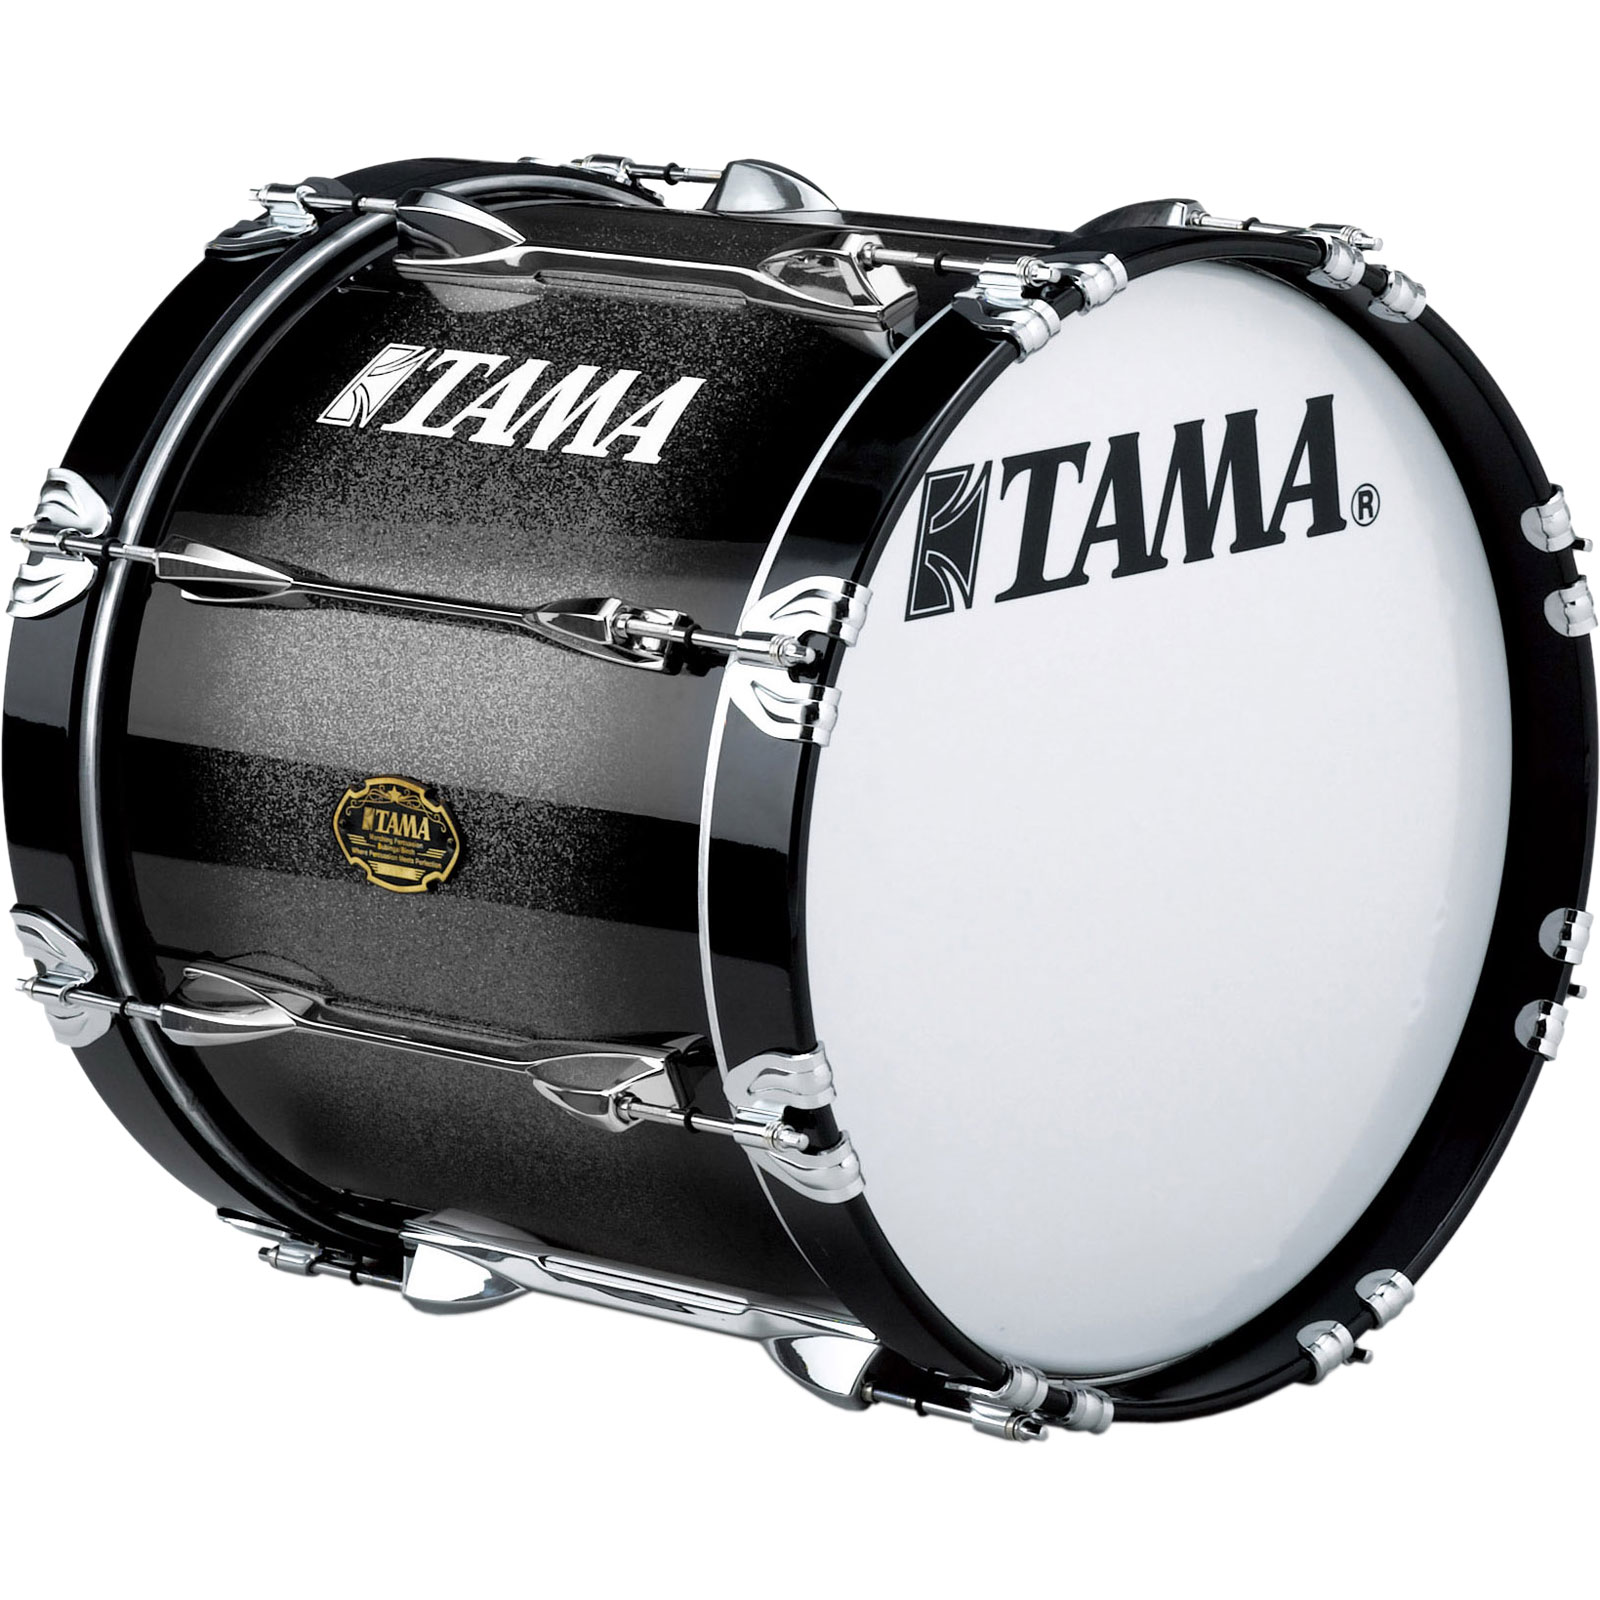 "Tama 16"" Birch/Bubinga Marching Bass Drum with Lacquer Finish"